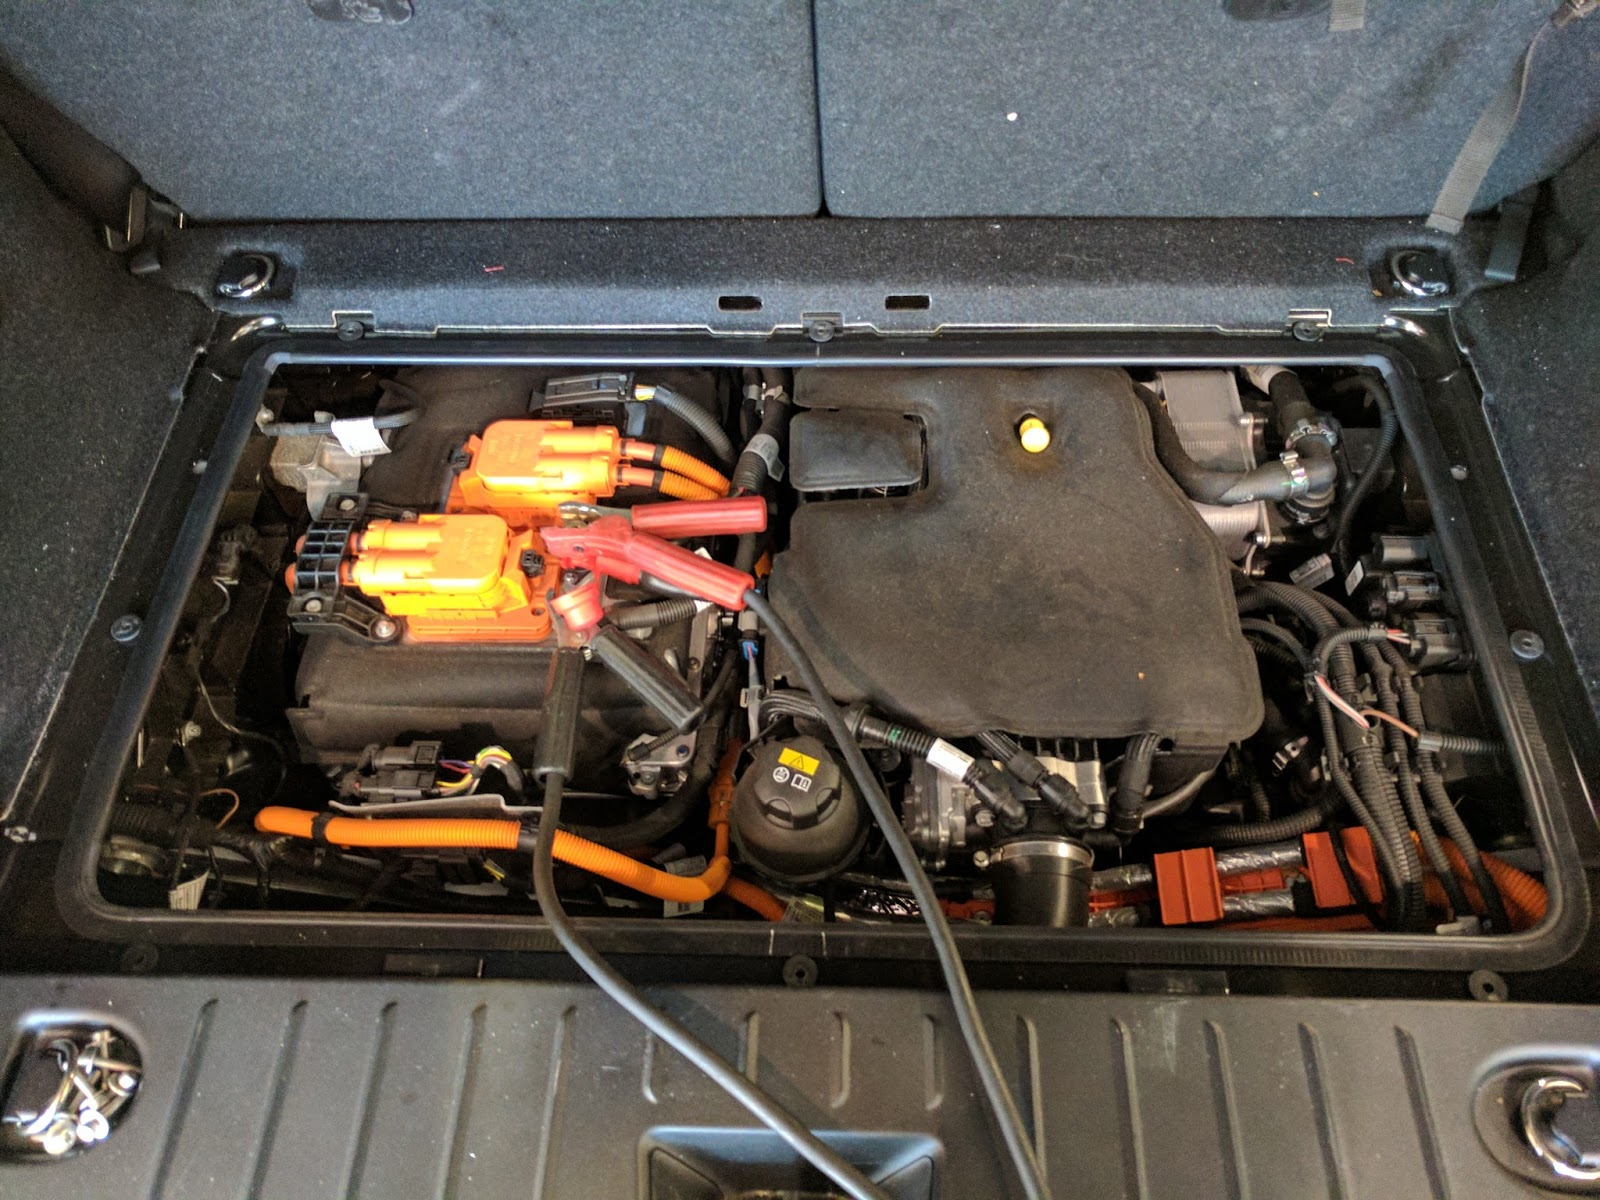 An i3 with the range extender option exposed. The electric motor and power  electronics are on the left, with the jumper cables attached.